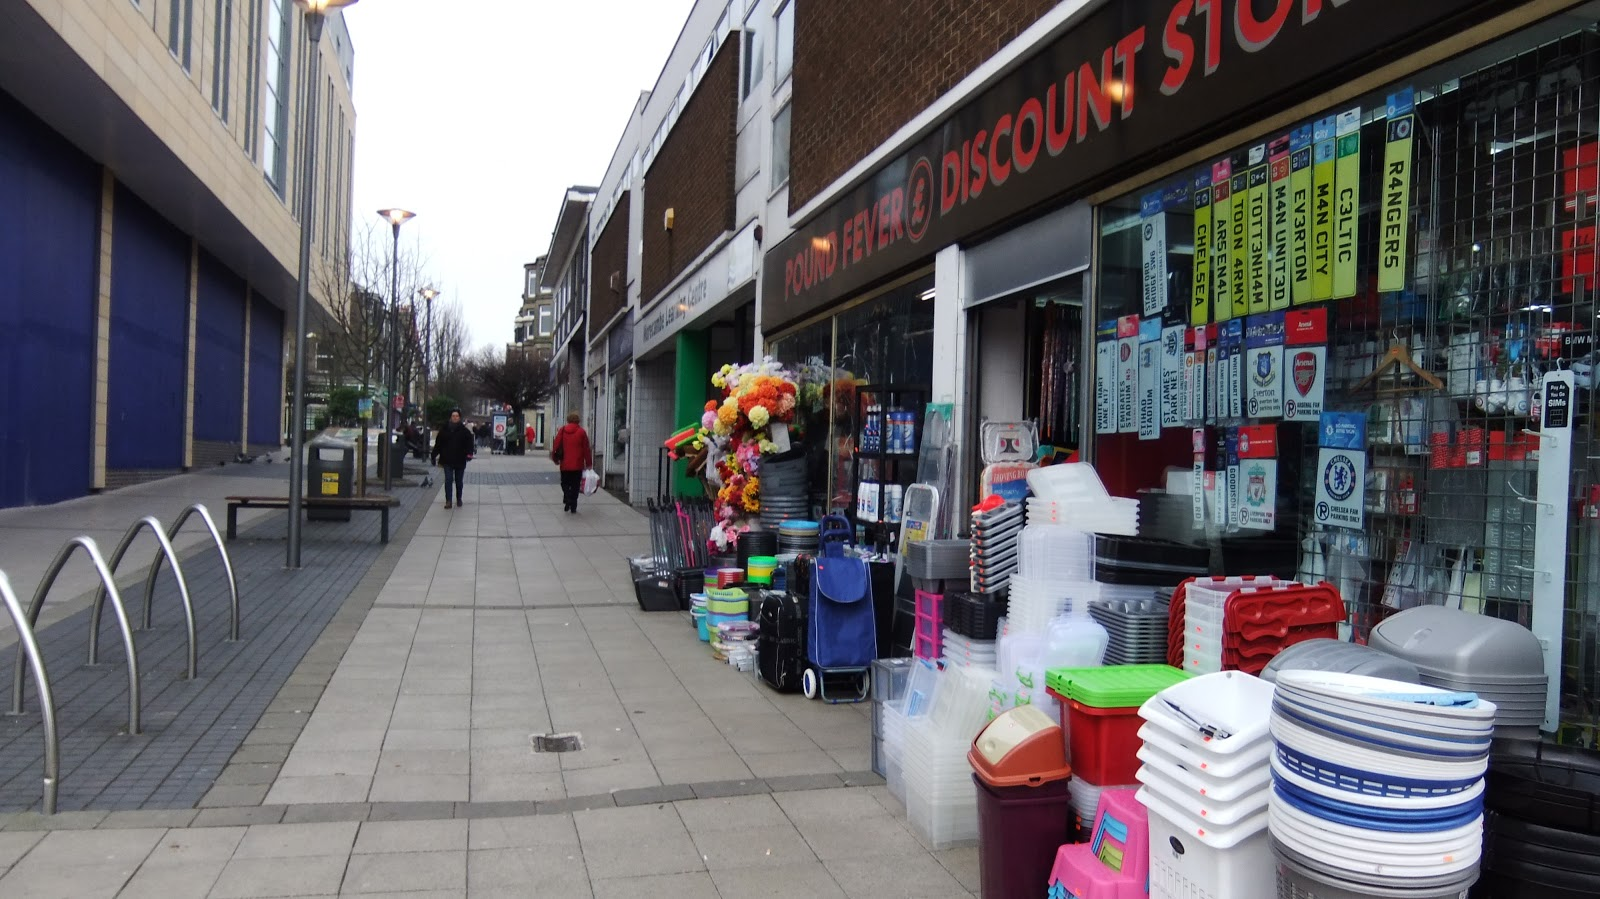 North West Images Morecambe Town Centre